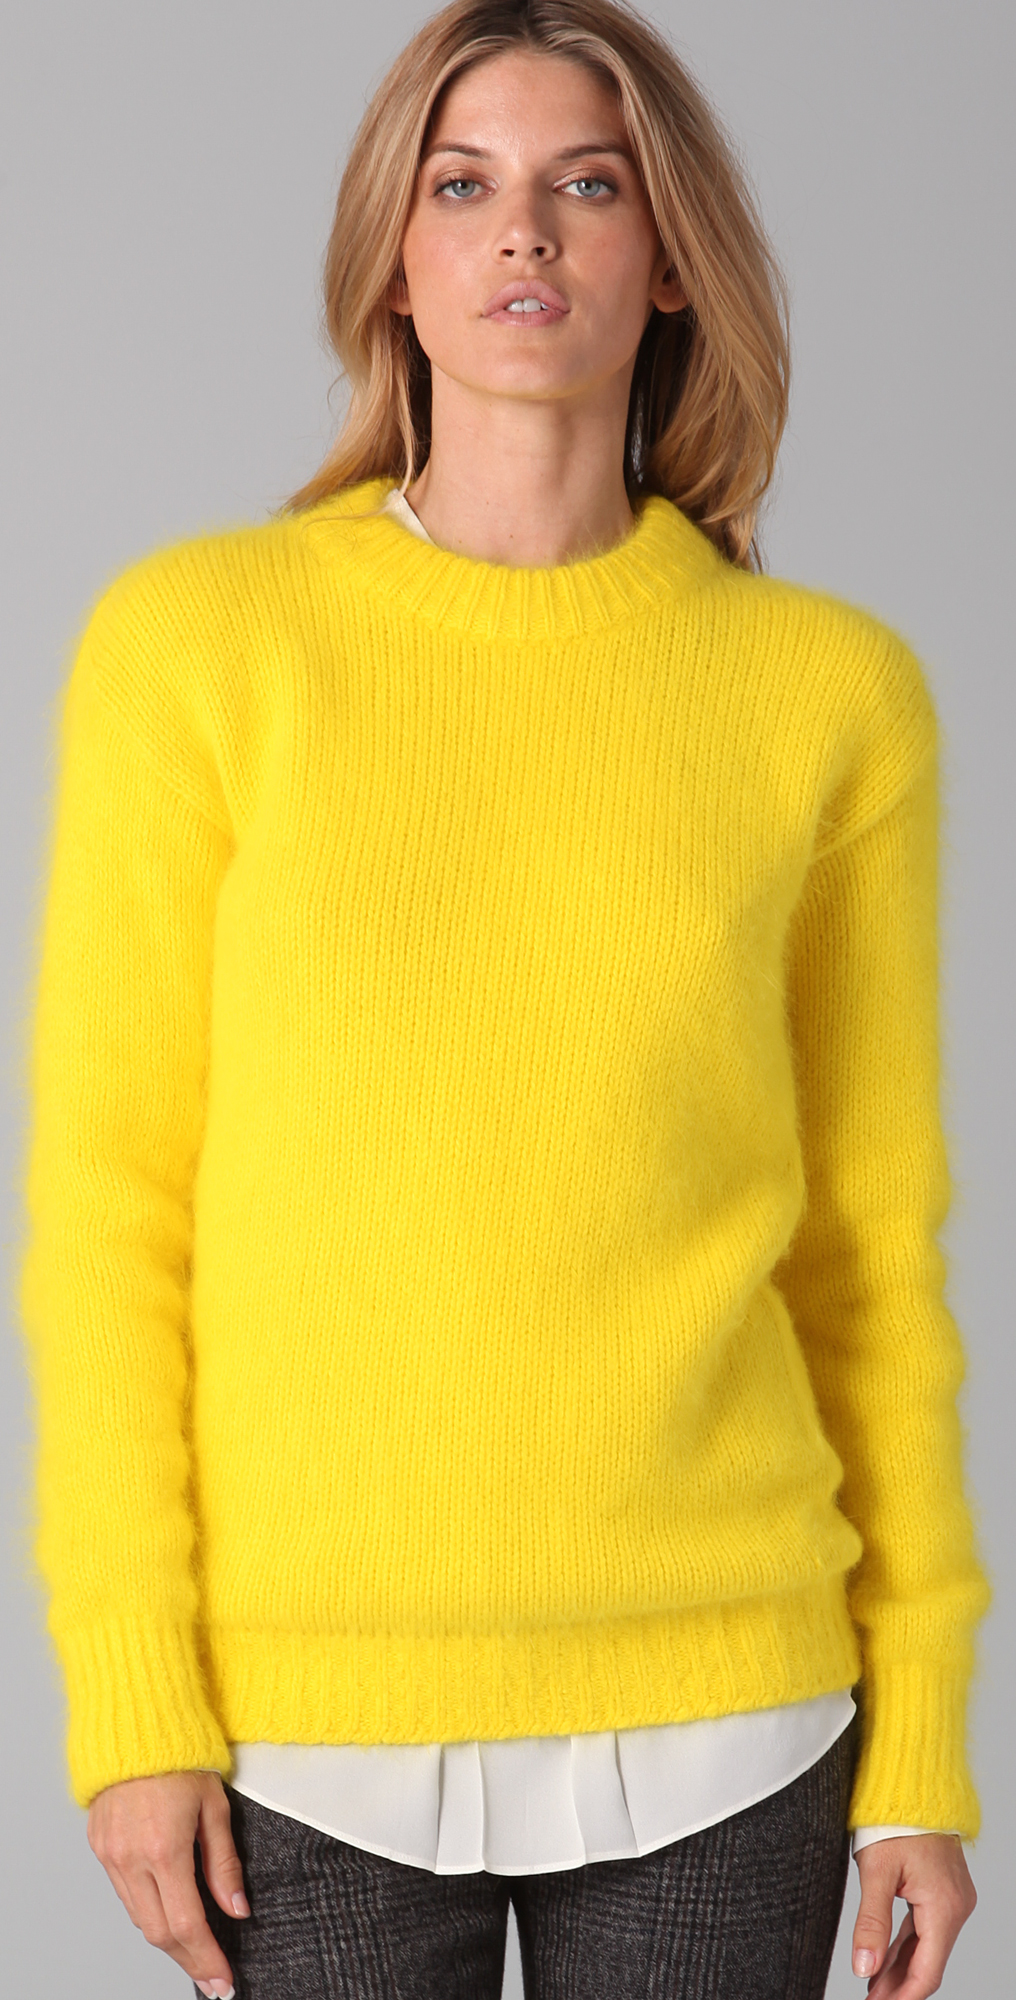 Joseph Crew Neck Angora Sweater | SHOPBOP